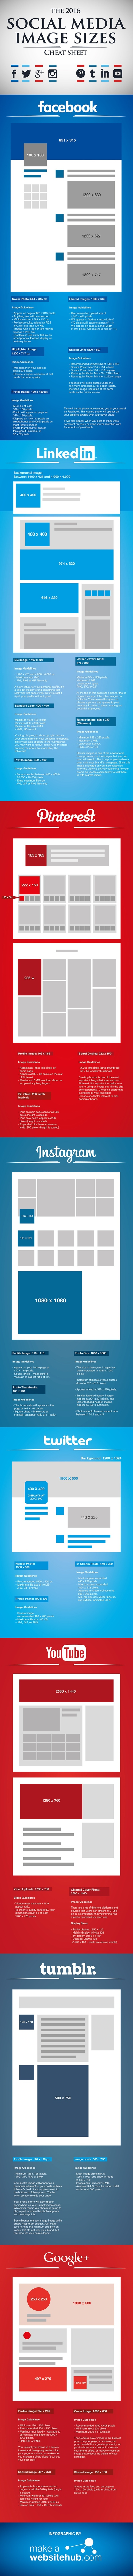 The 2016 Social Media Image Sizes Cheatsheet